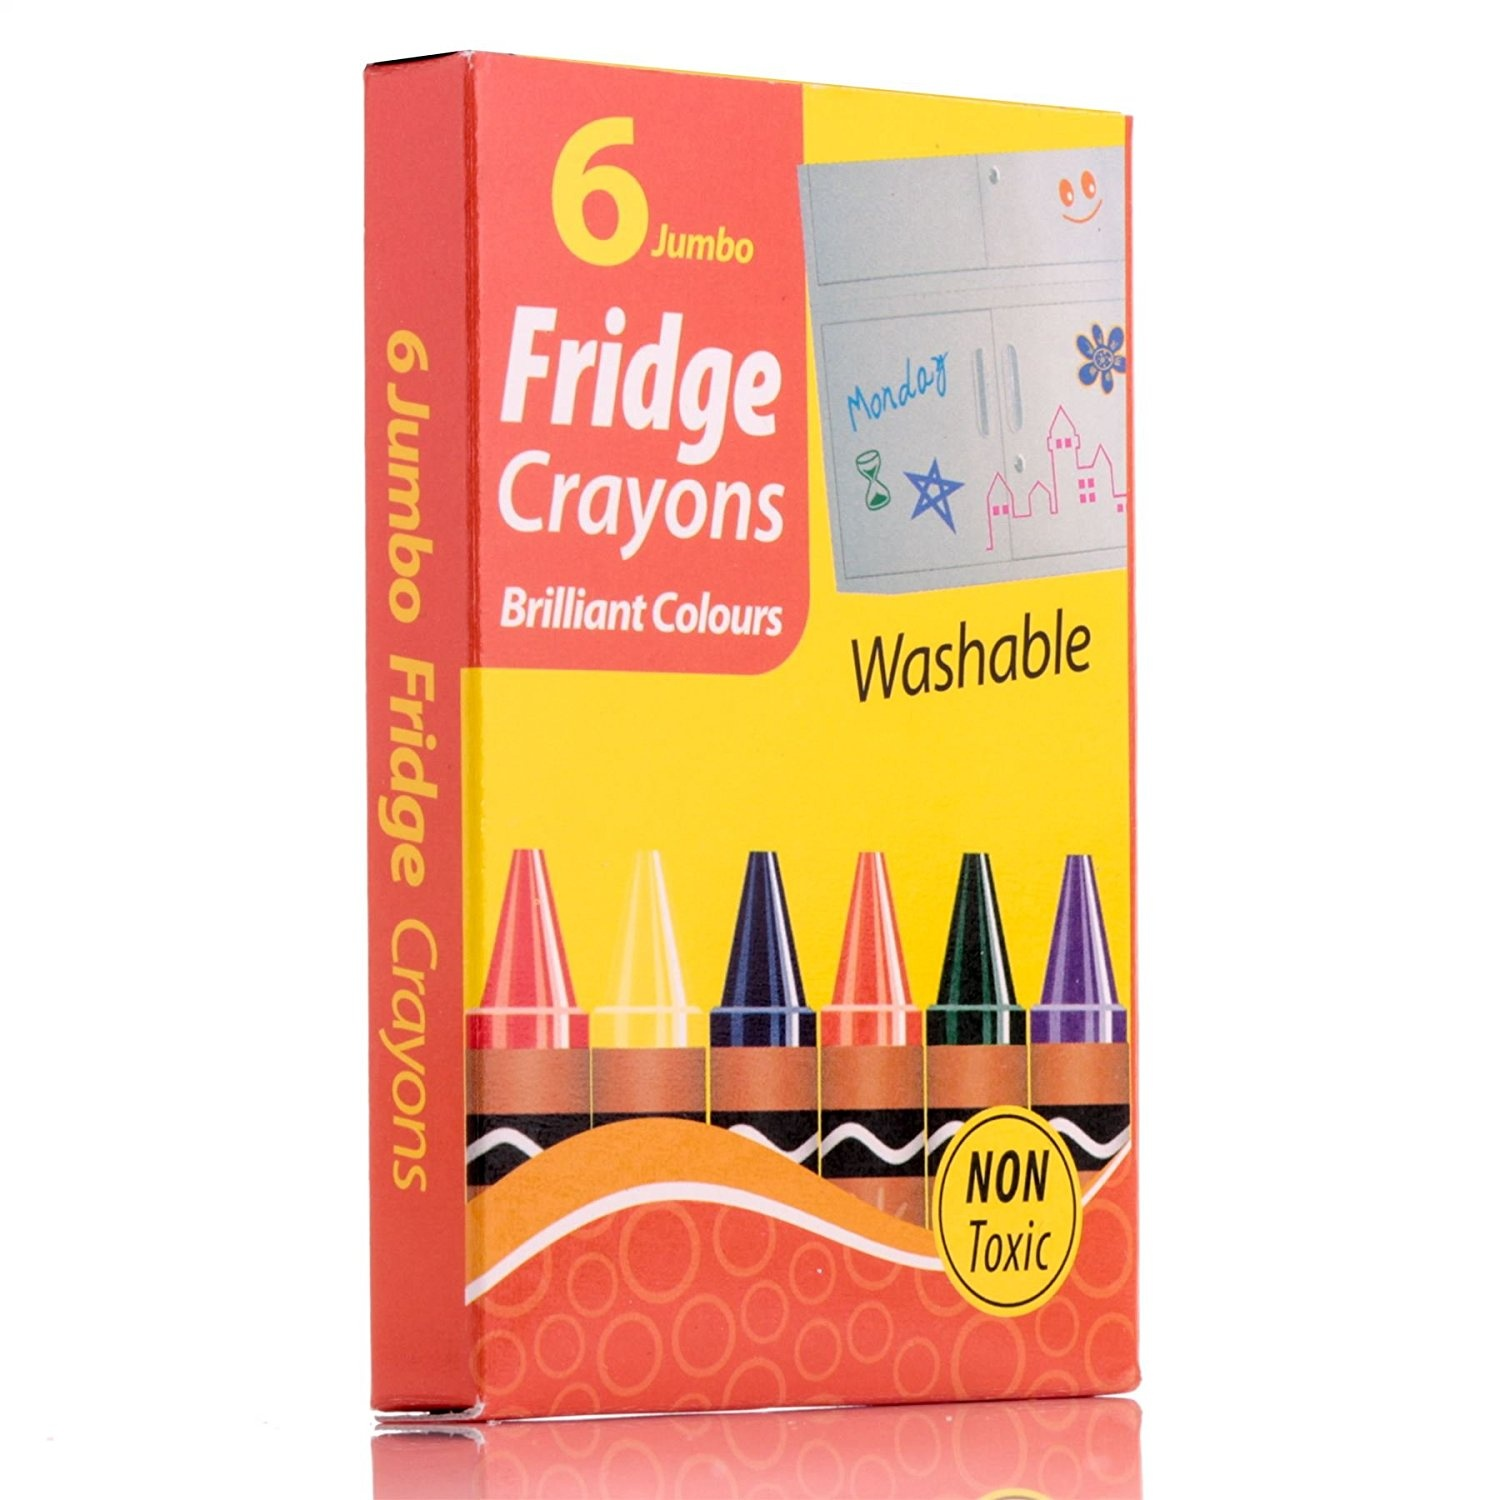 6 Fridge Crayons Colouring Baby Jumbo Toddler Toy Washable Non Toxic Art Craft